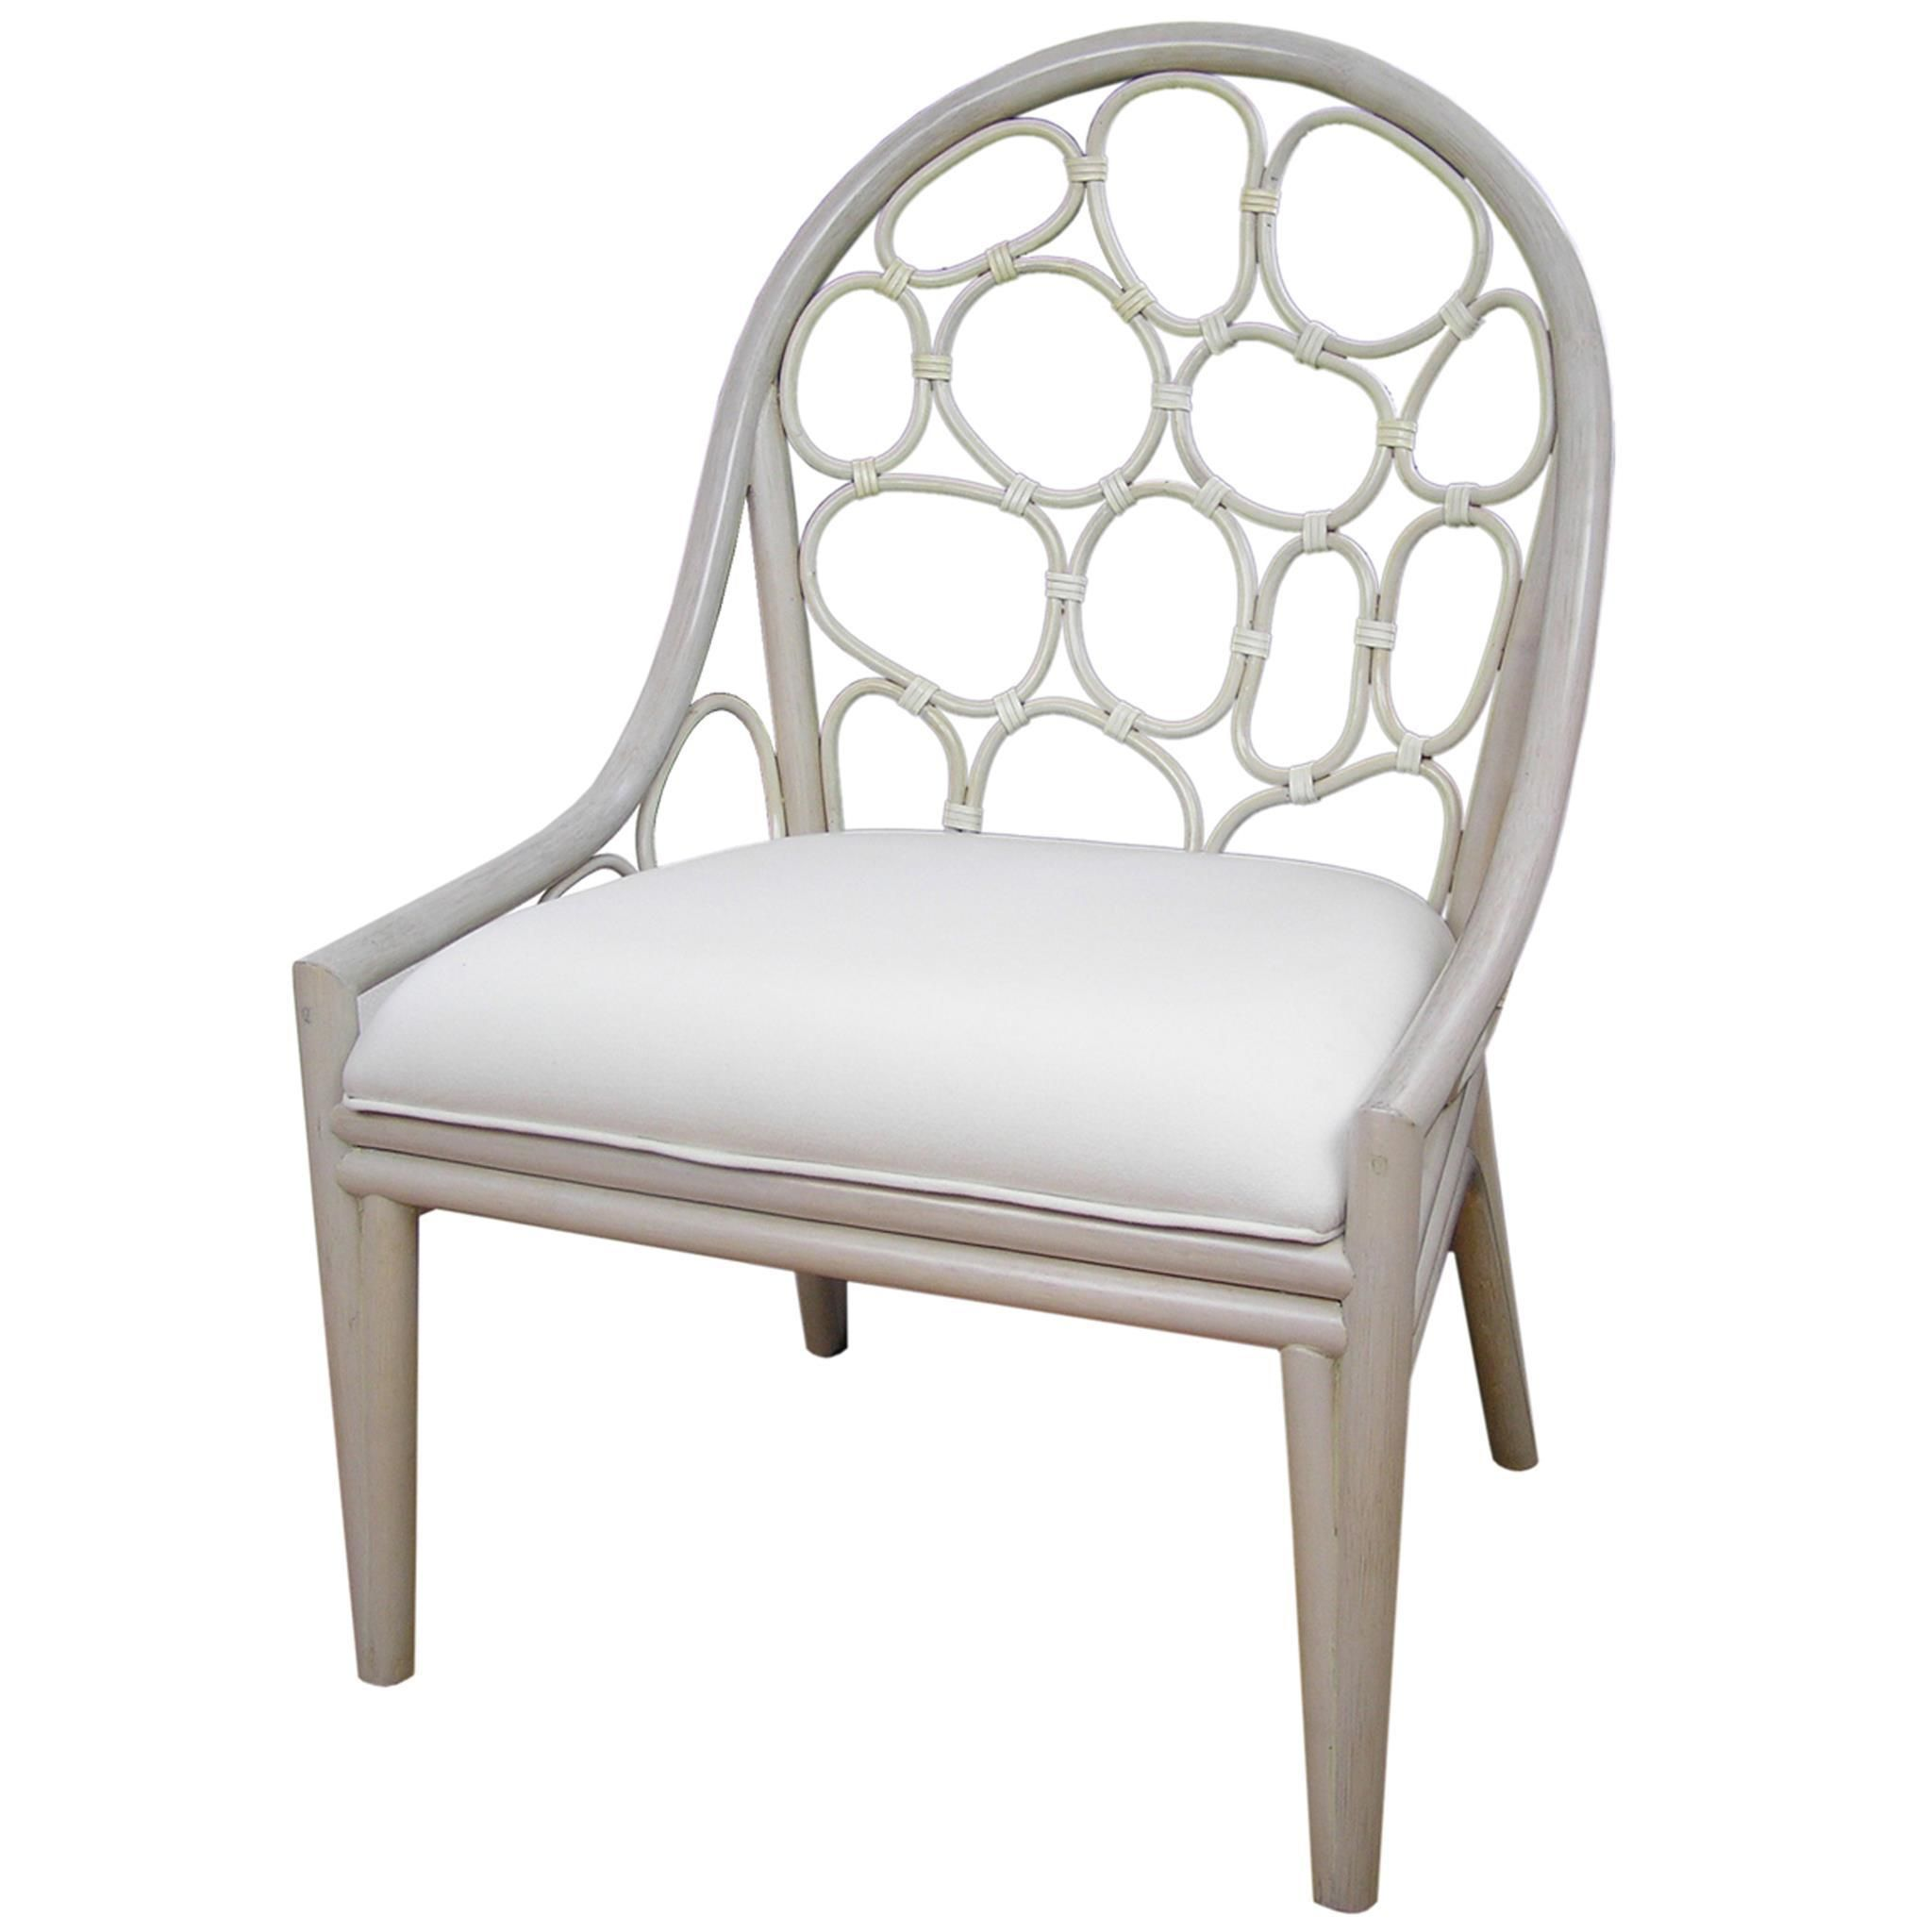 Siletz Transitional White Wooden Chair by Crafted Home